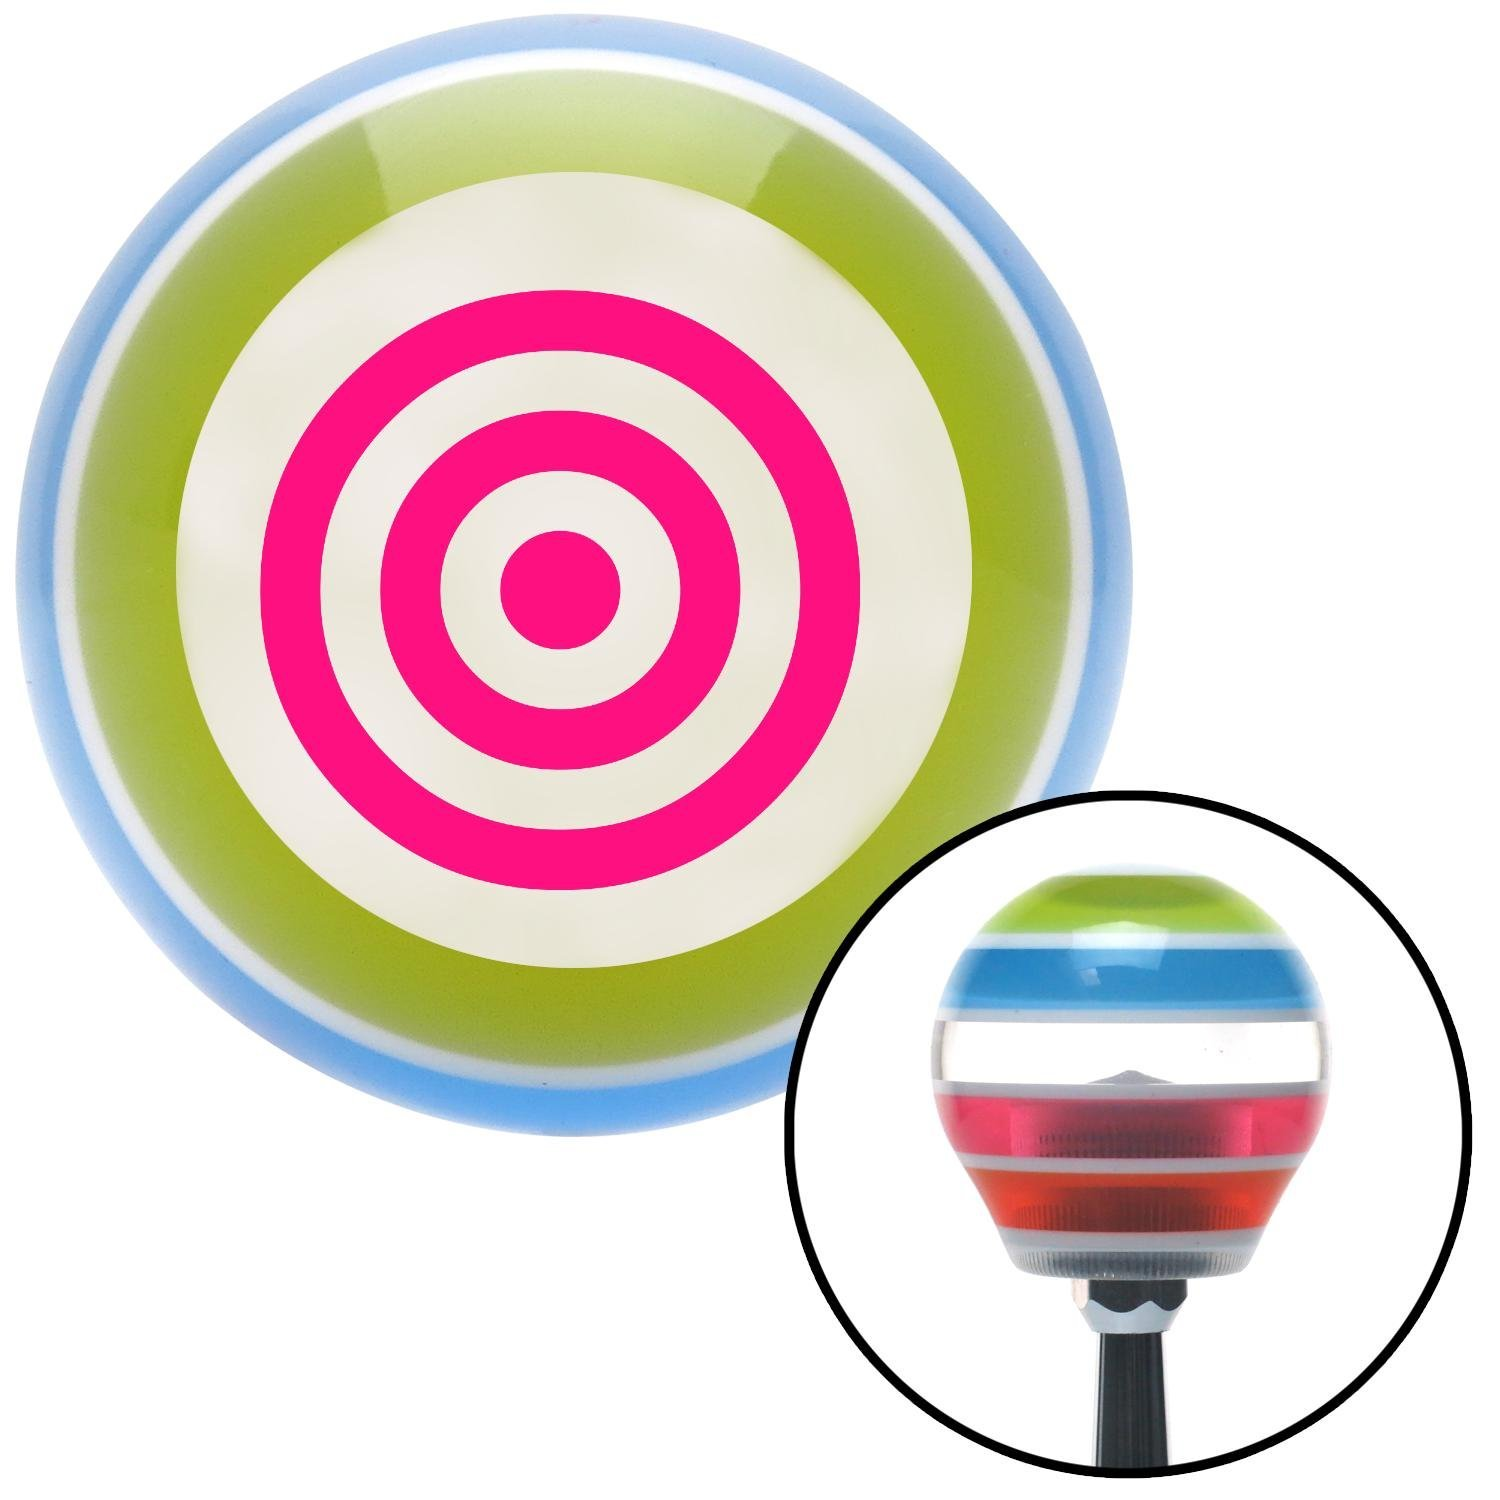 American Shifter 134893 Stripe Shift Knob with M16 x 1.5 Insert Pink Target